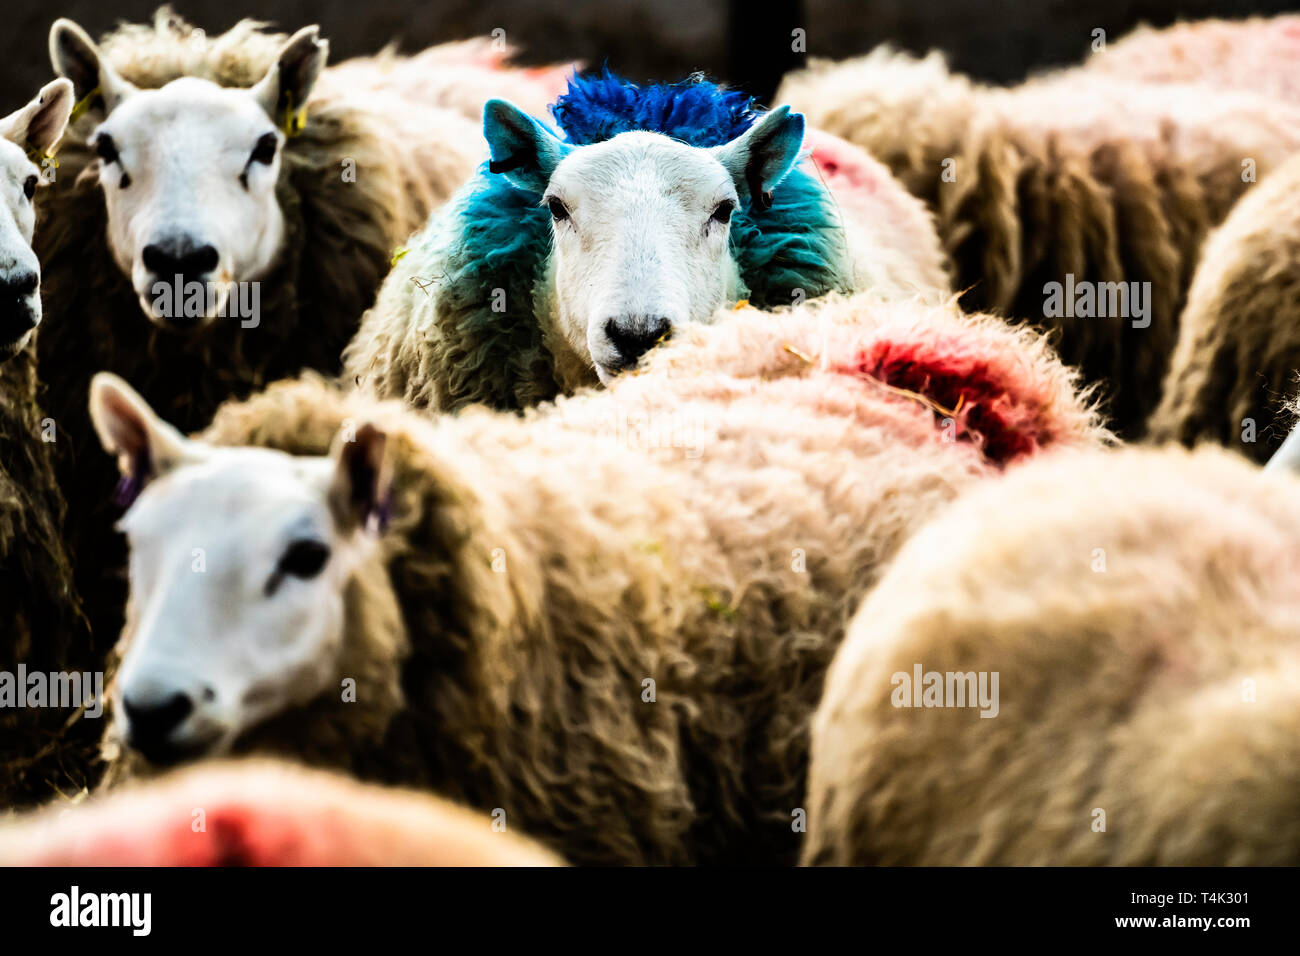 Flock Straw Shed Stock Photos Amp Flock Straw Shed Stock